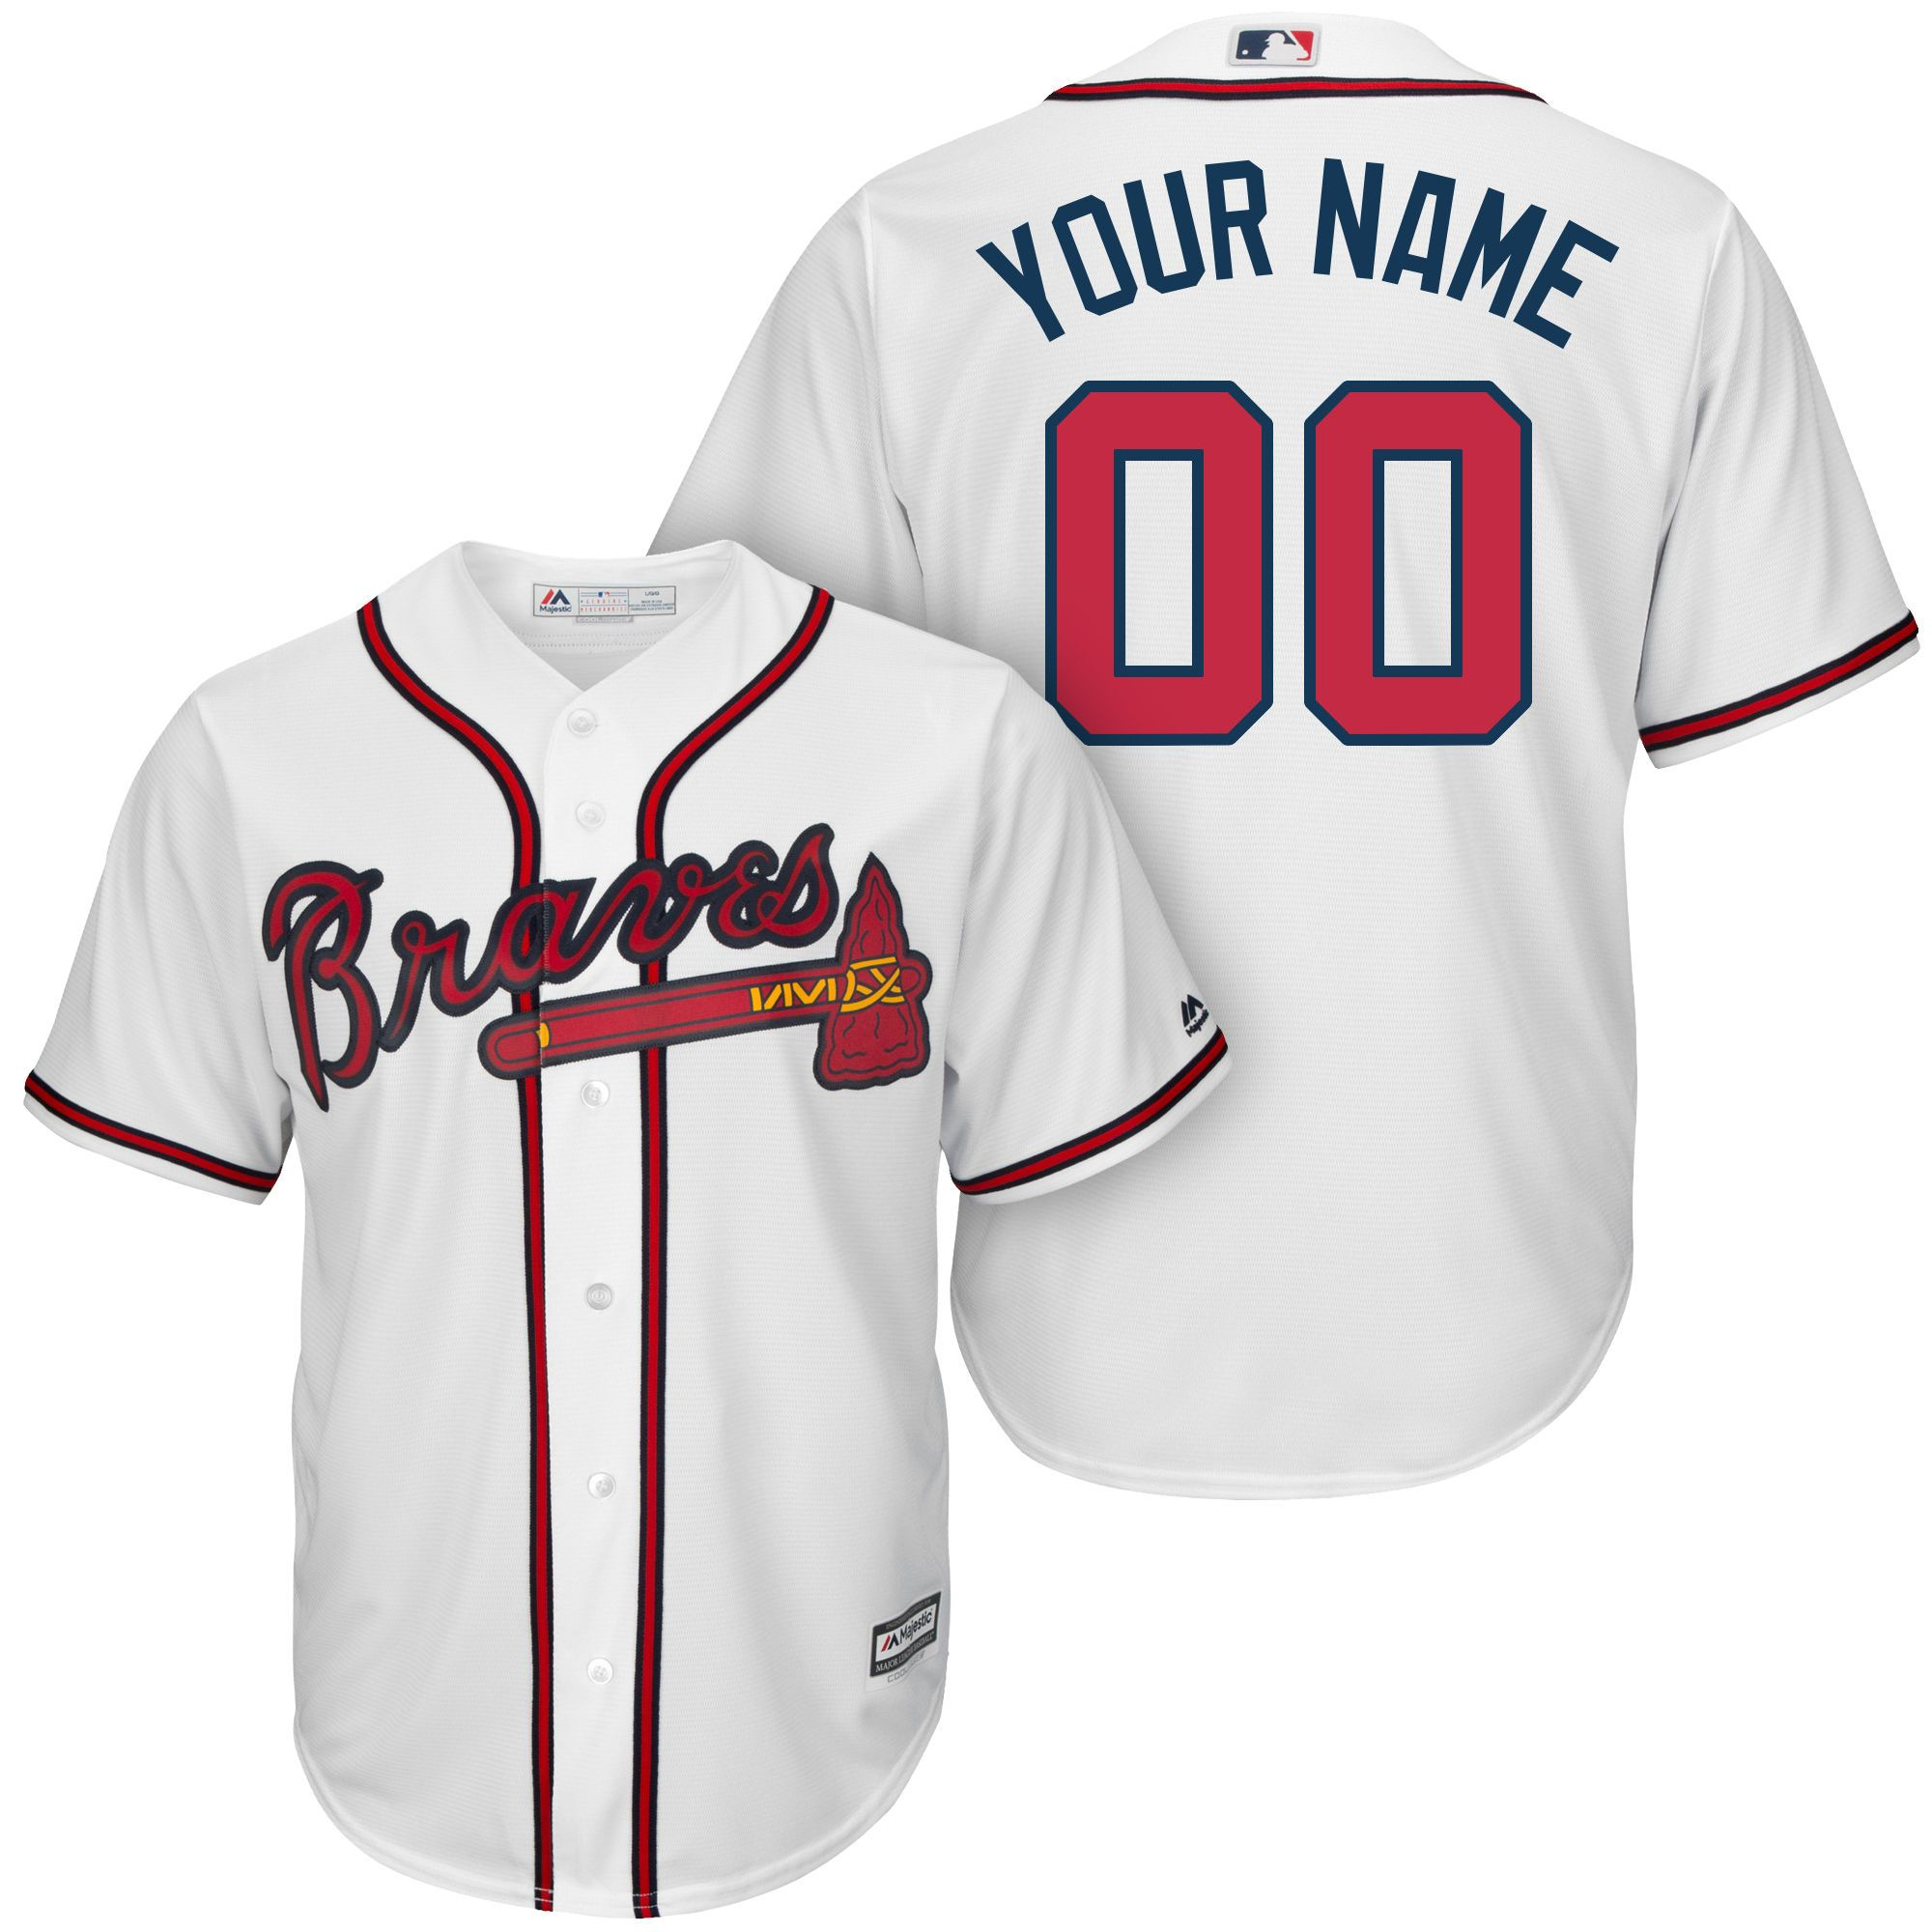 Big And Tall Custom Atlanta Braves Mlb Jerseys T Shirts Hoodies Add Any Name From The Braves Ros Braves Jersey Custom Baseball Jersey Atlanta Braves Jersey